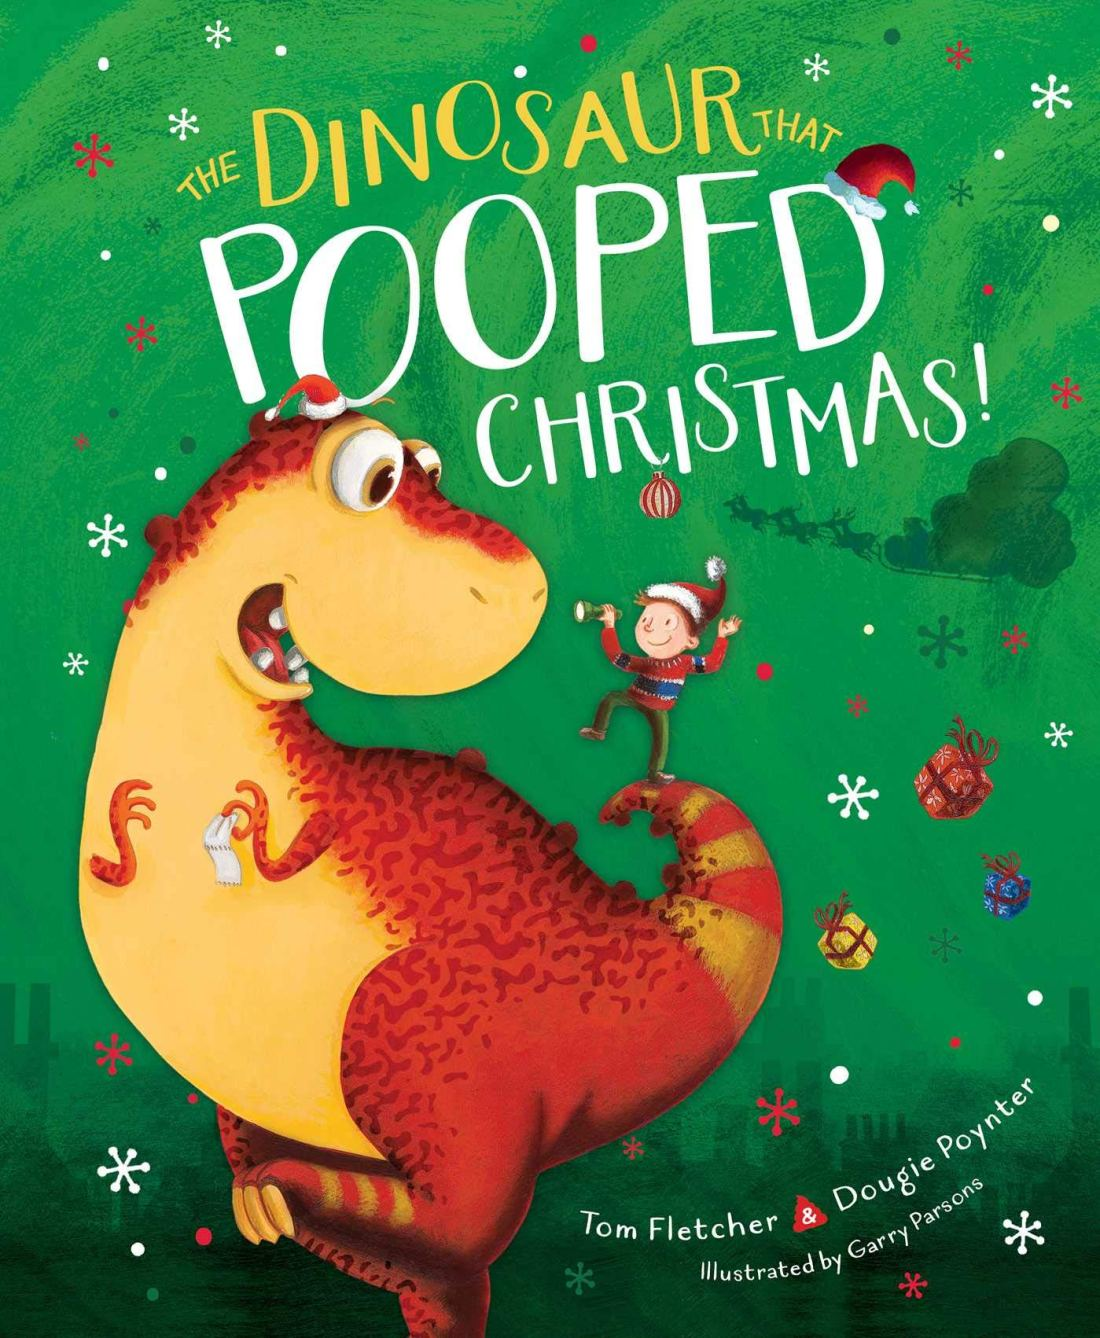 The Dinosaur That Pooped Christmas Book